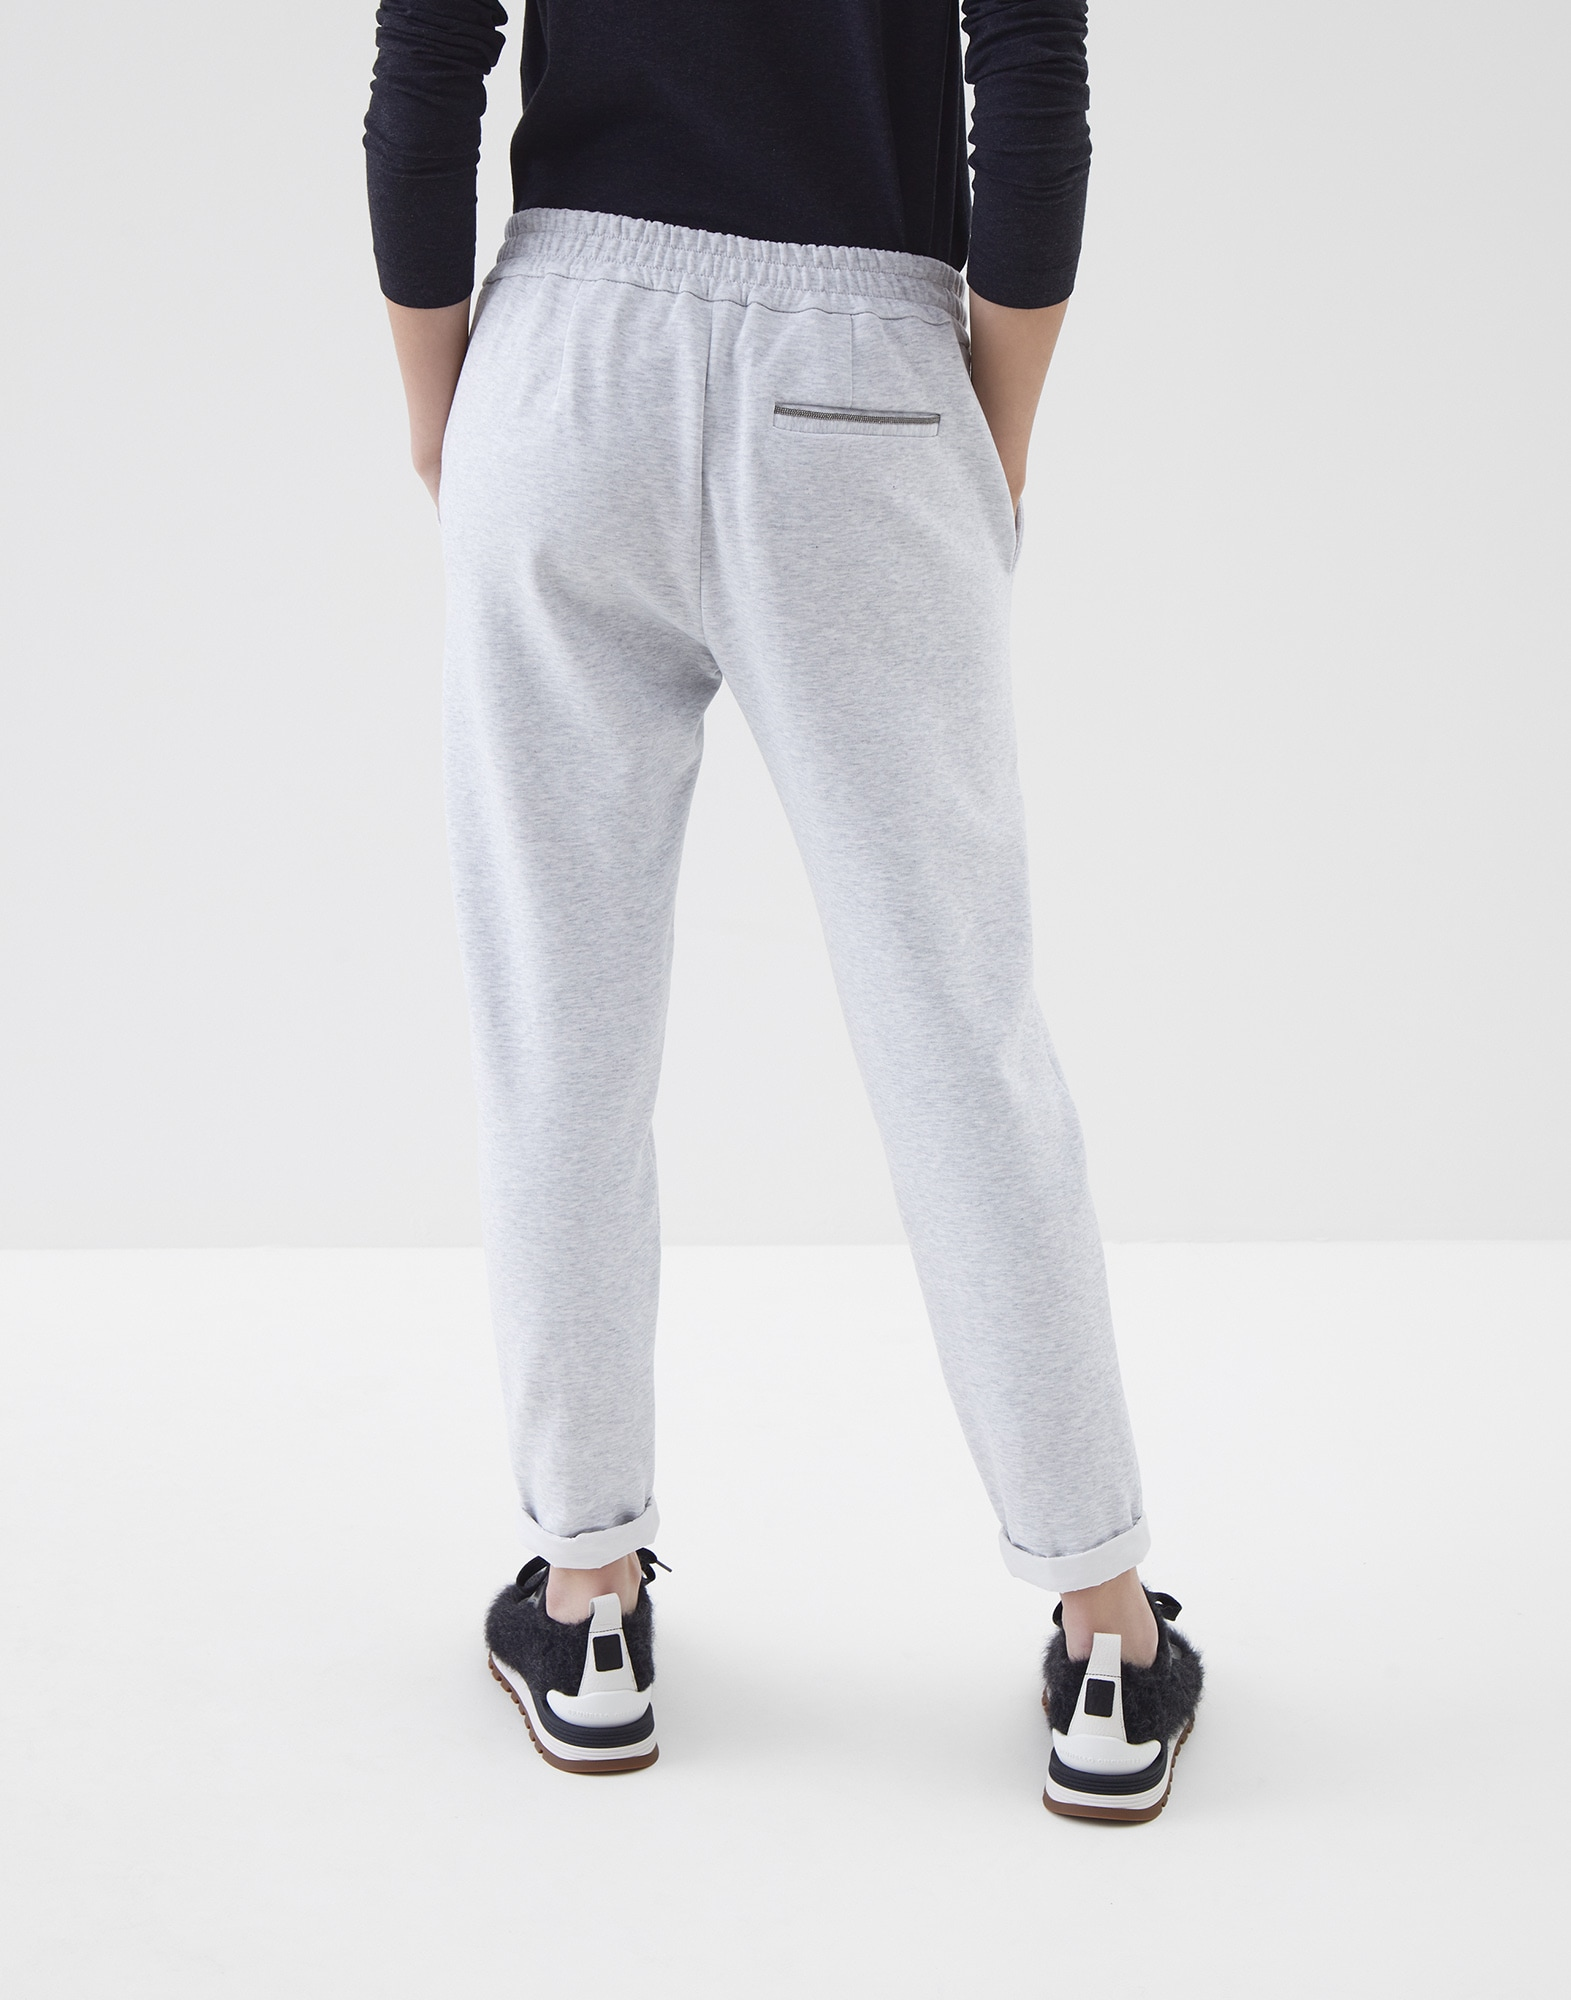 Sweatpants Pebble Woman 1 - Brunello Cucinelli